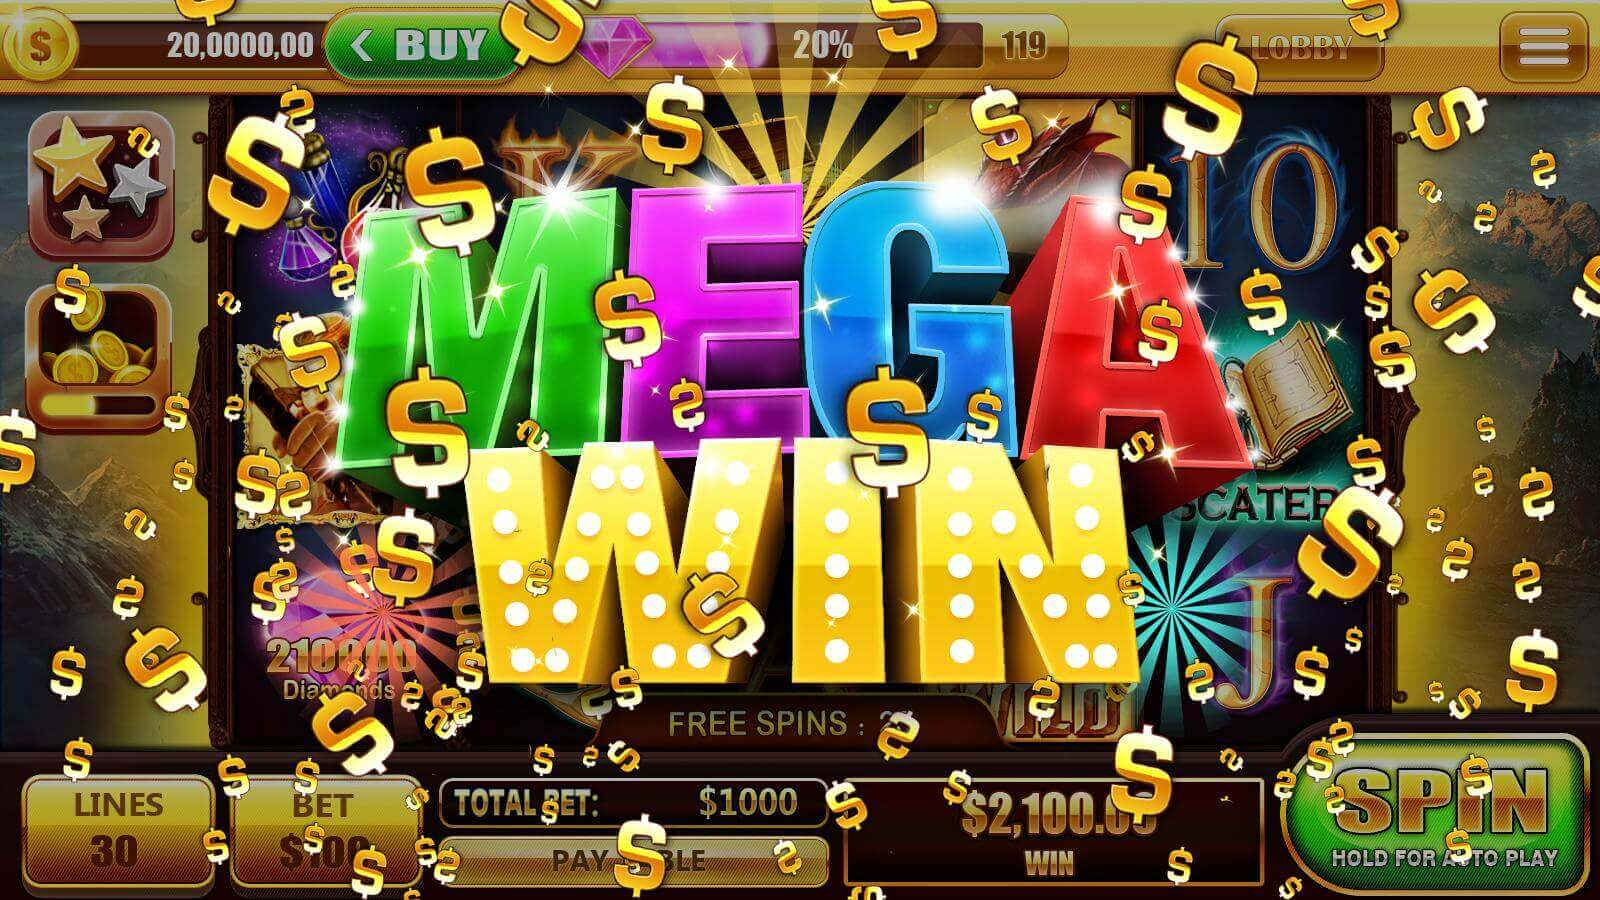 Big Prosperity Slot Machine - Play Online or on Mobile Now